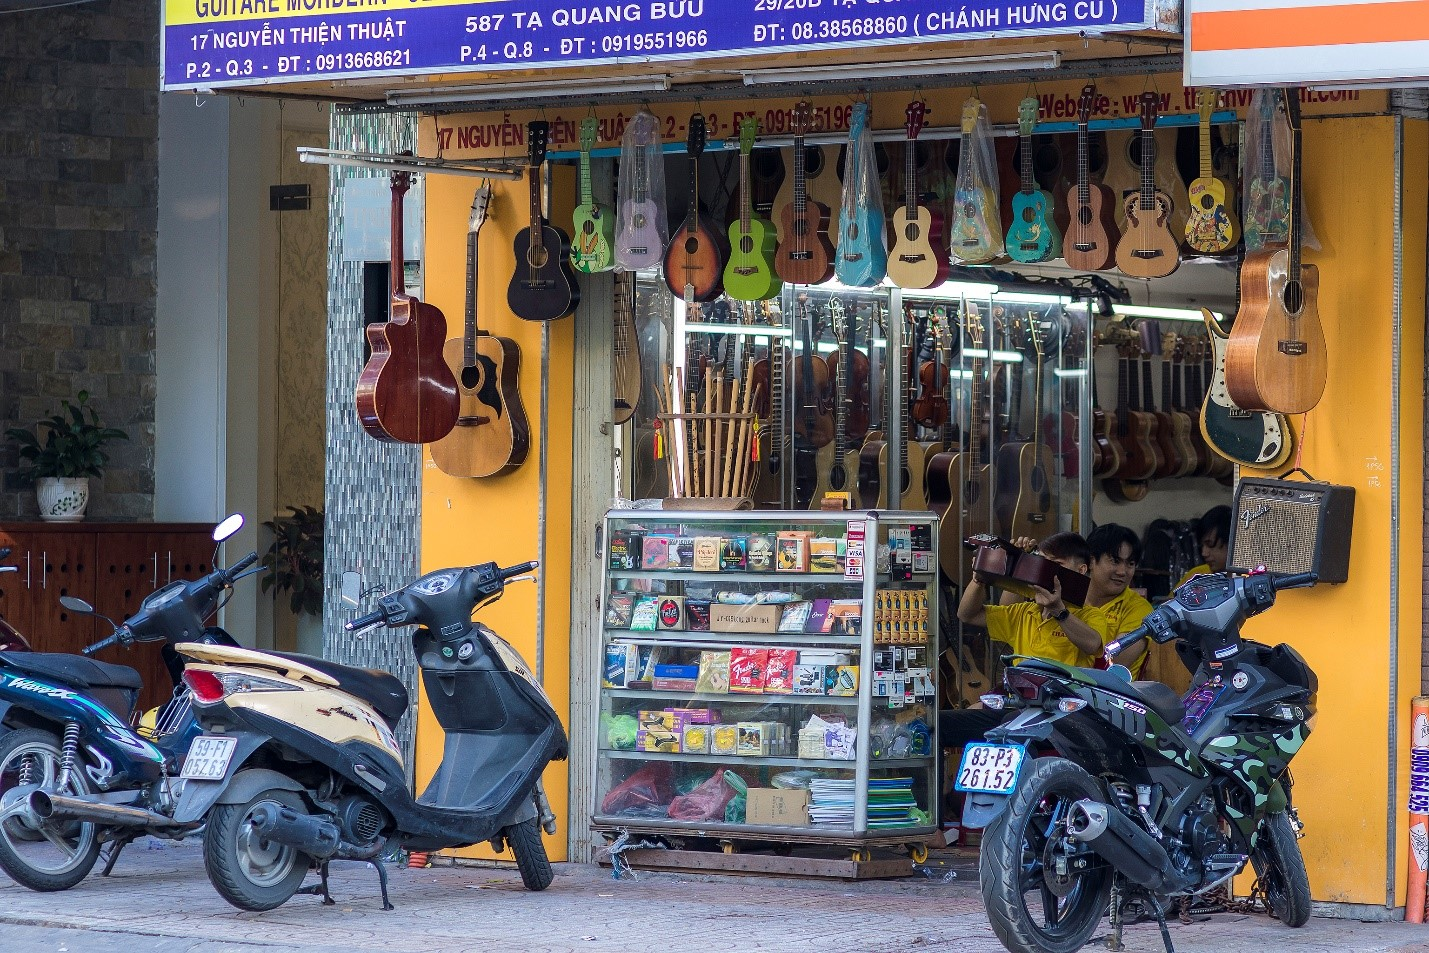 Guitar shop on Nguyen Thien Thuat st.